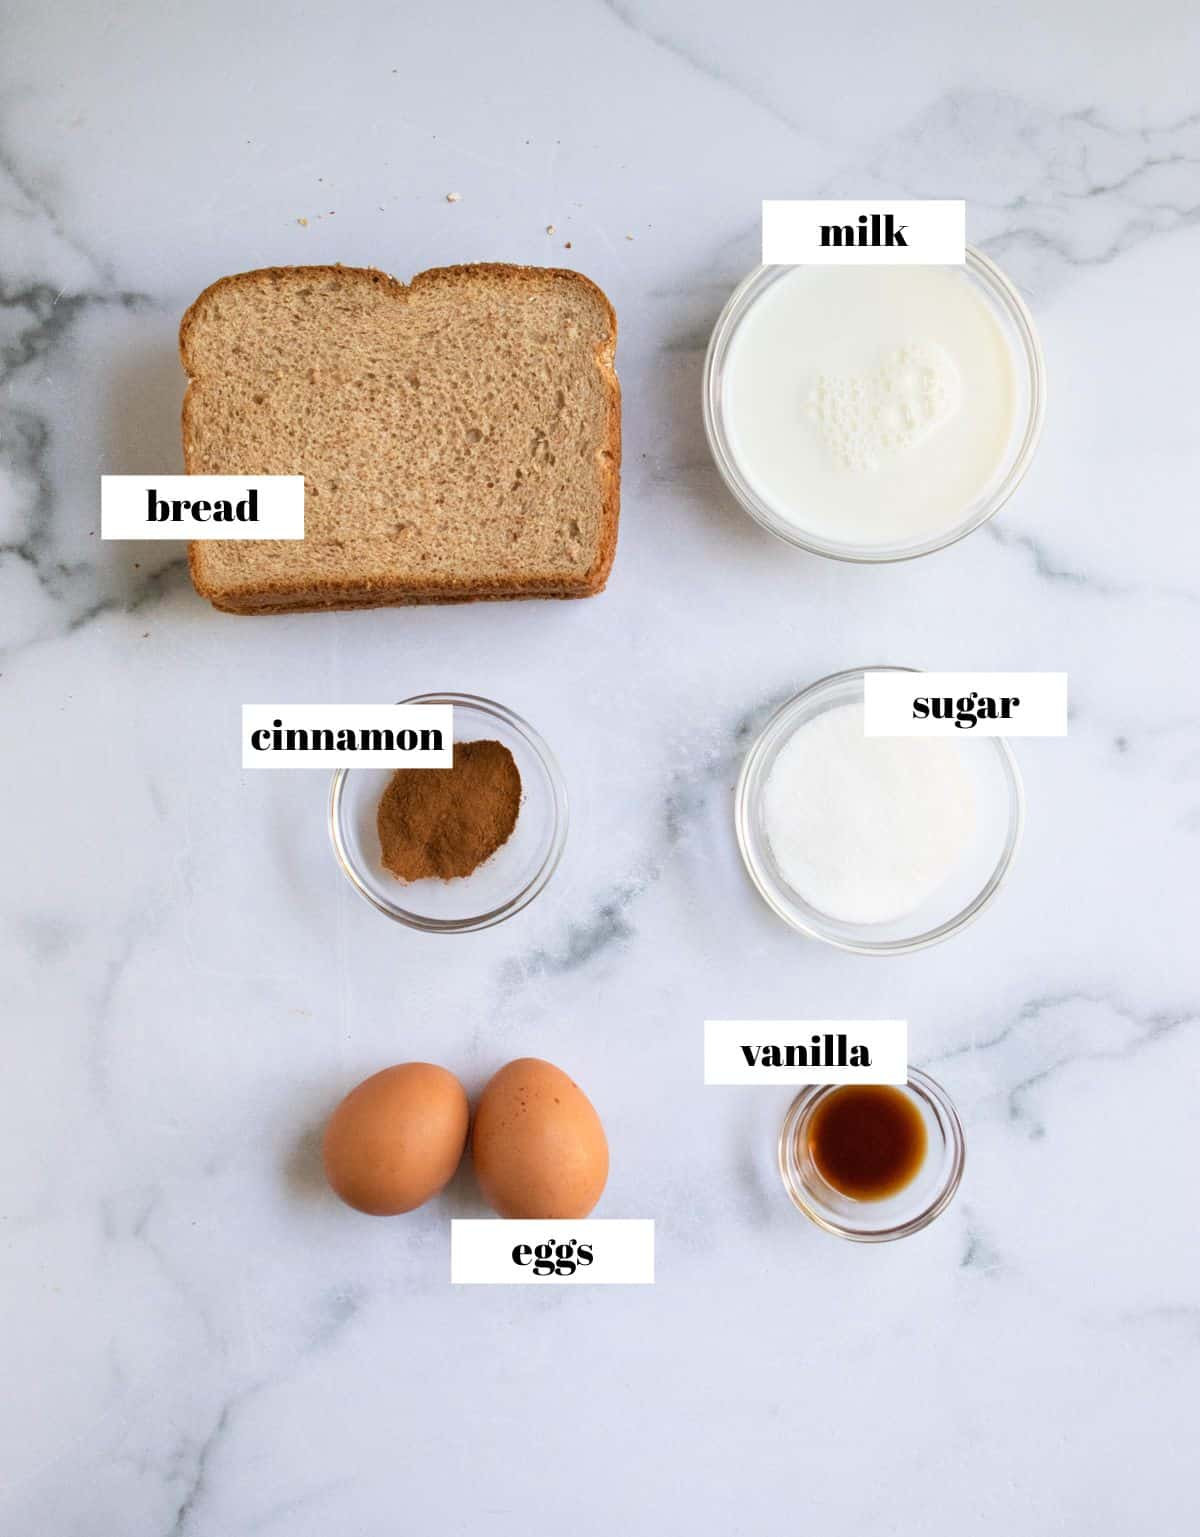 Bread, eggs, vanilla, sugar and cinnamon labeled on white